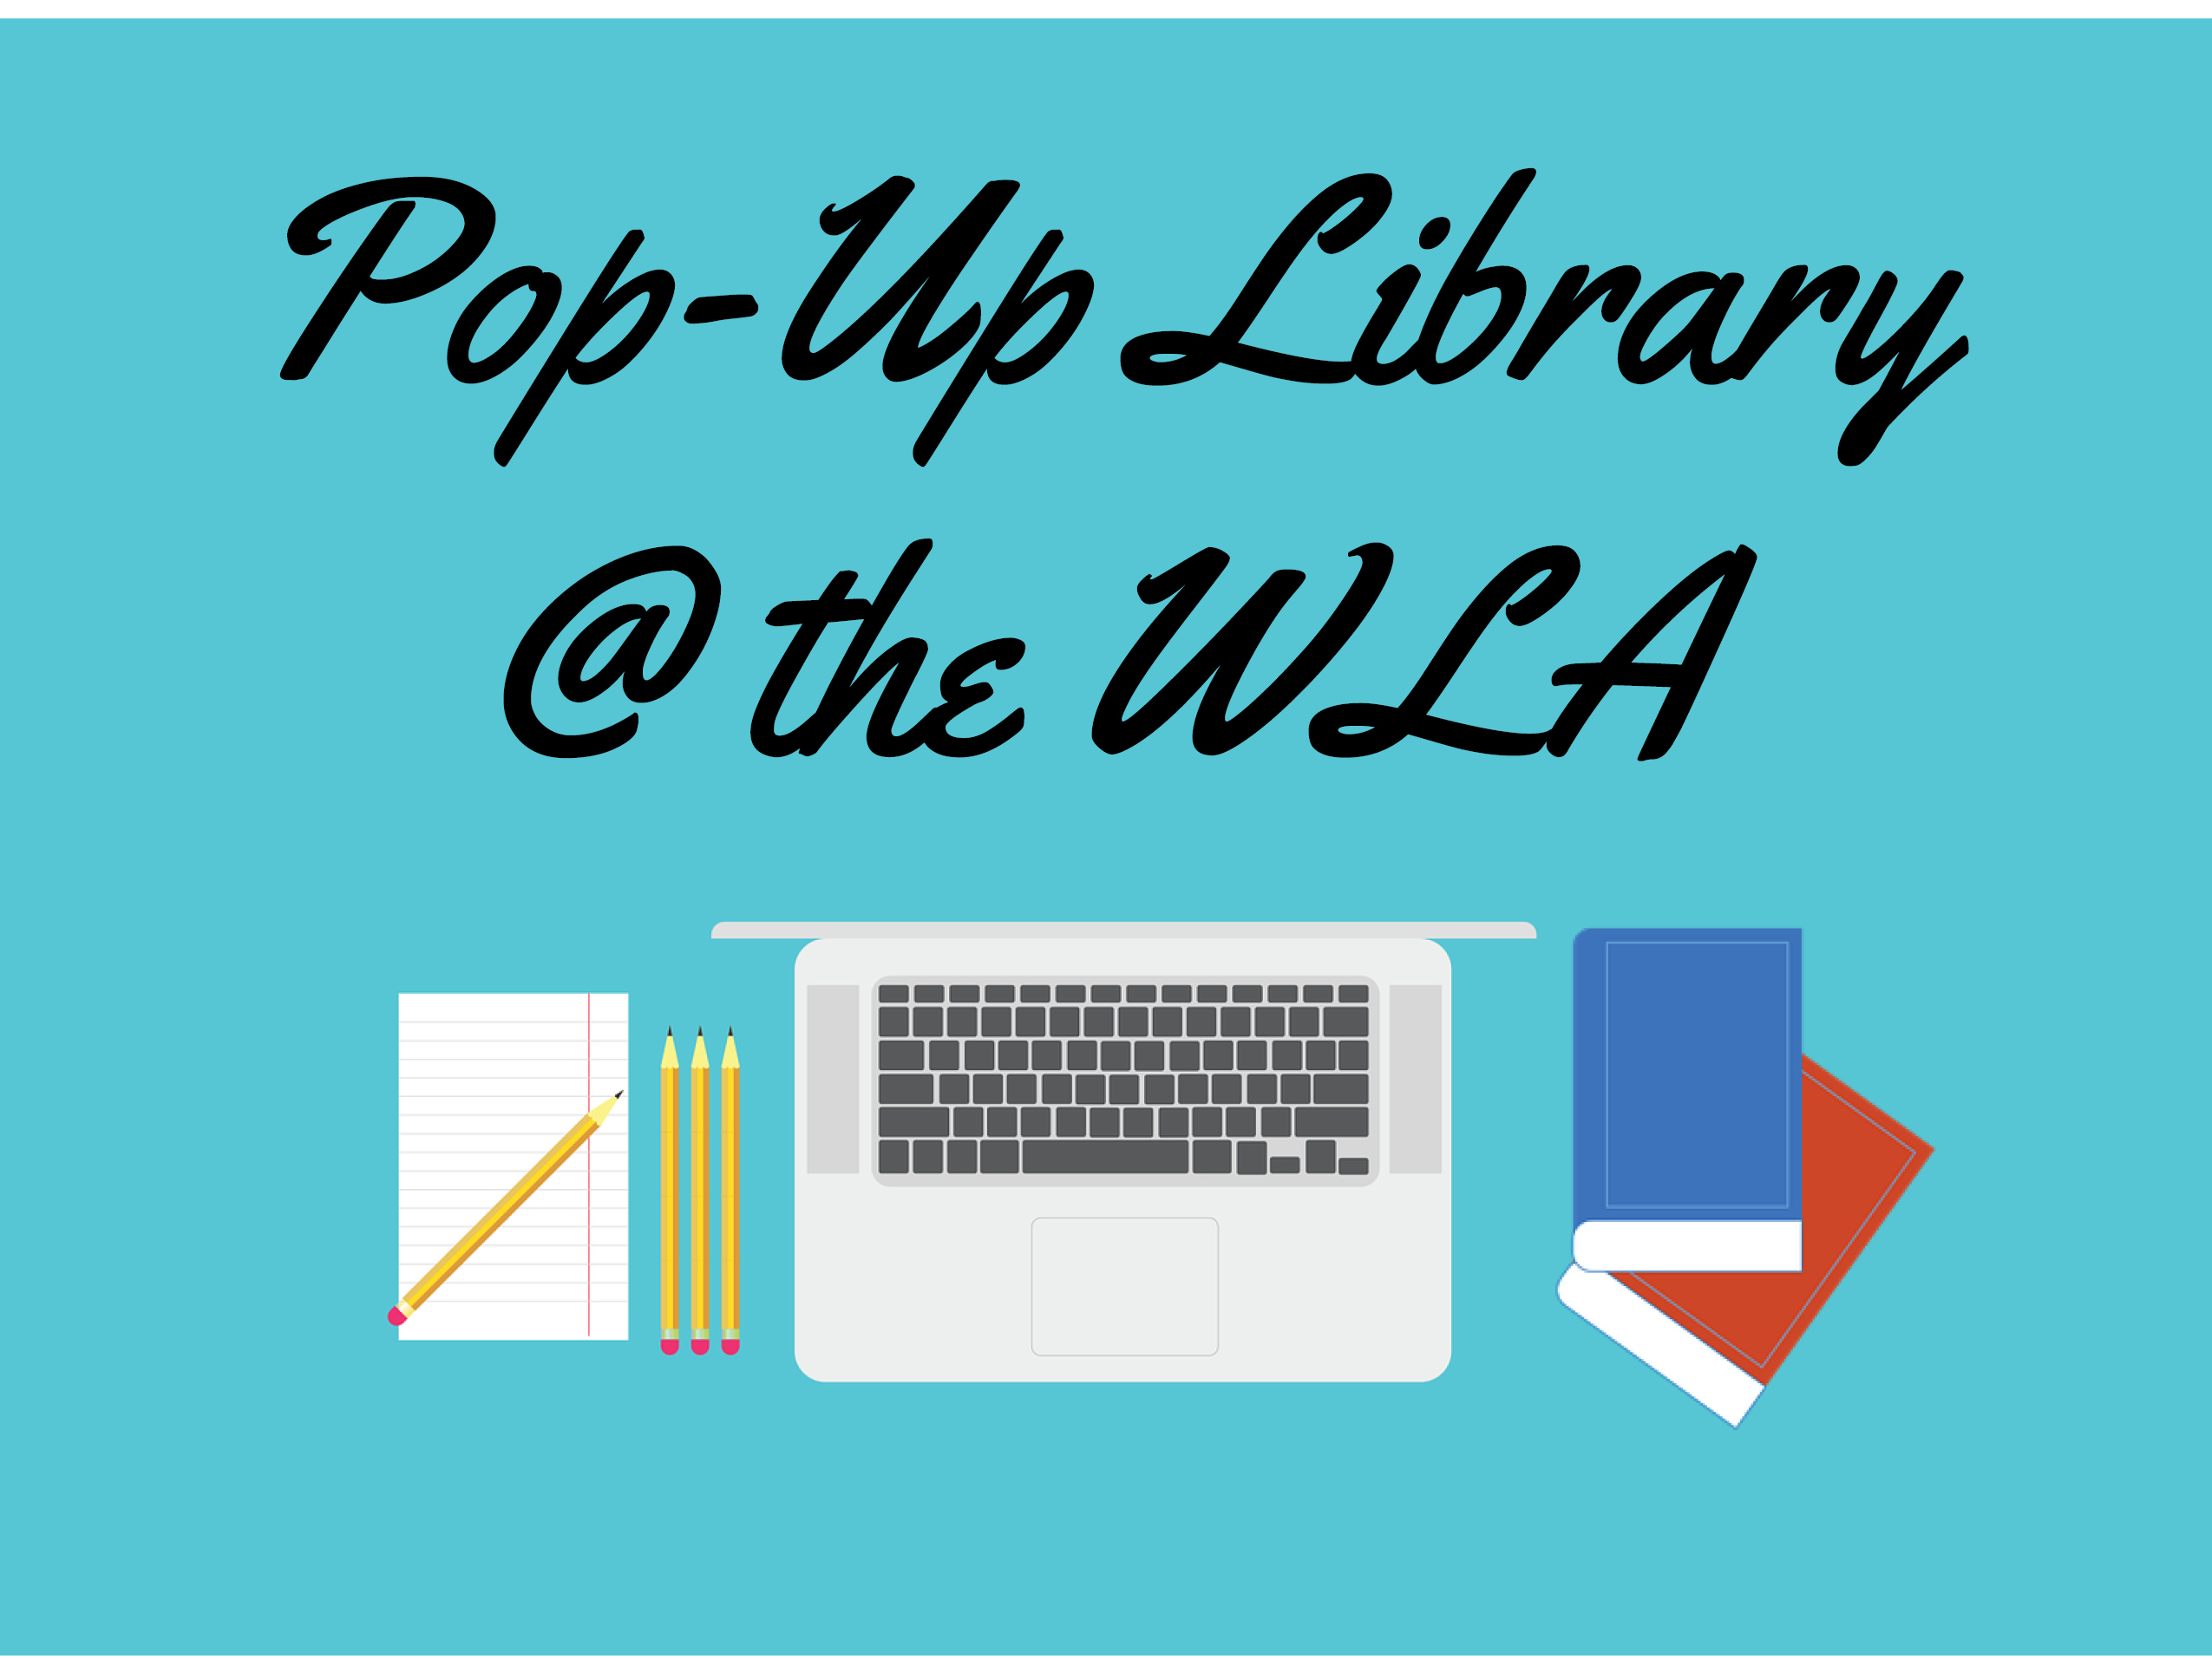 Pop-Up Library at the WLA